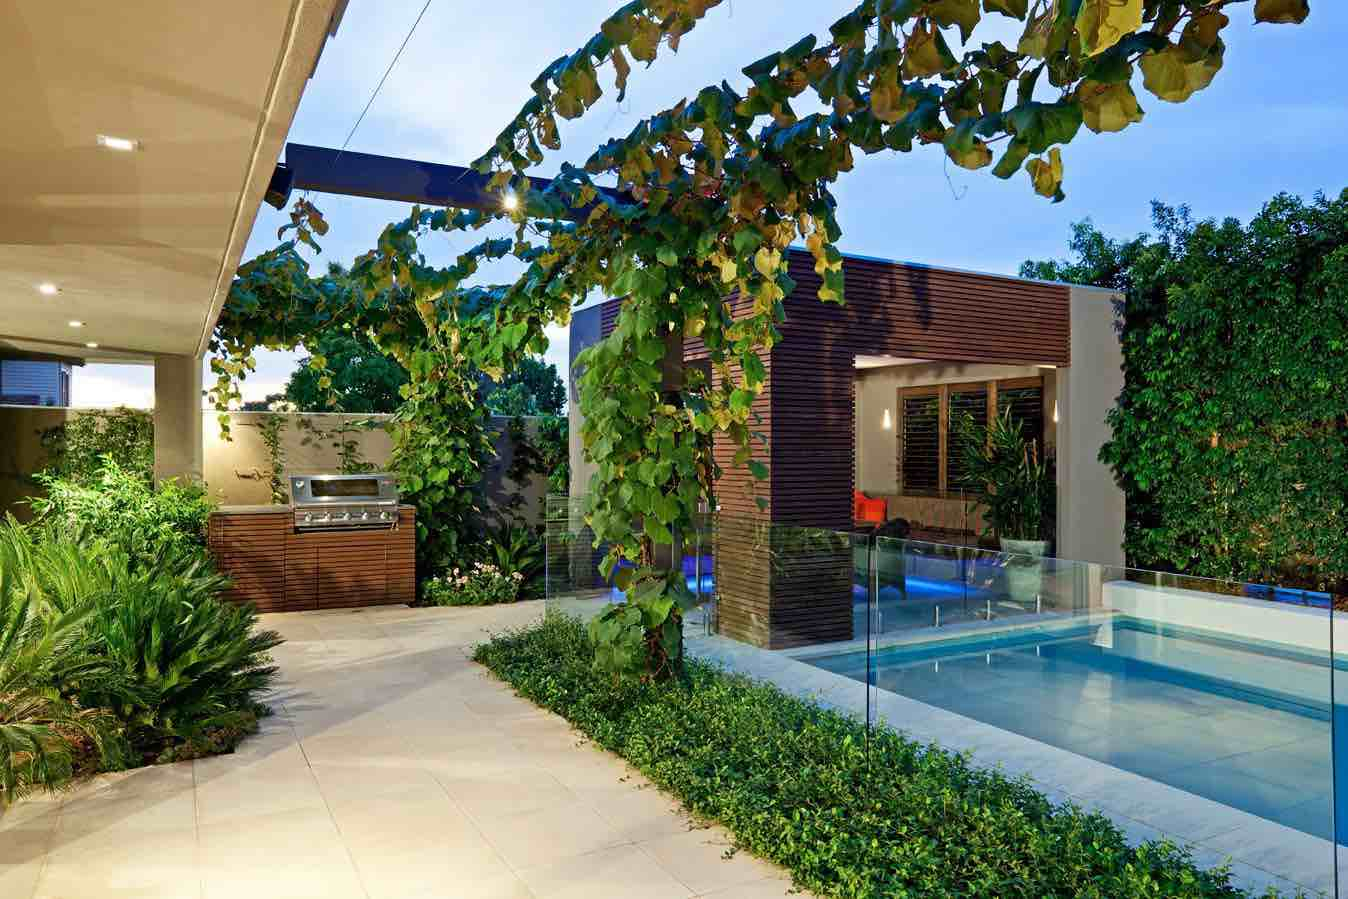 41 Backyard Design Ideas For Small Yards | Worthminer